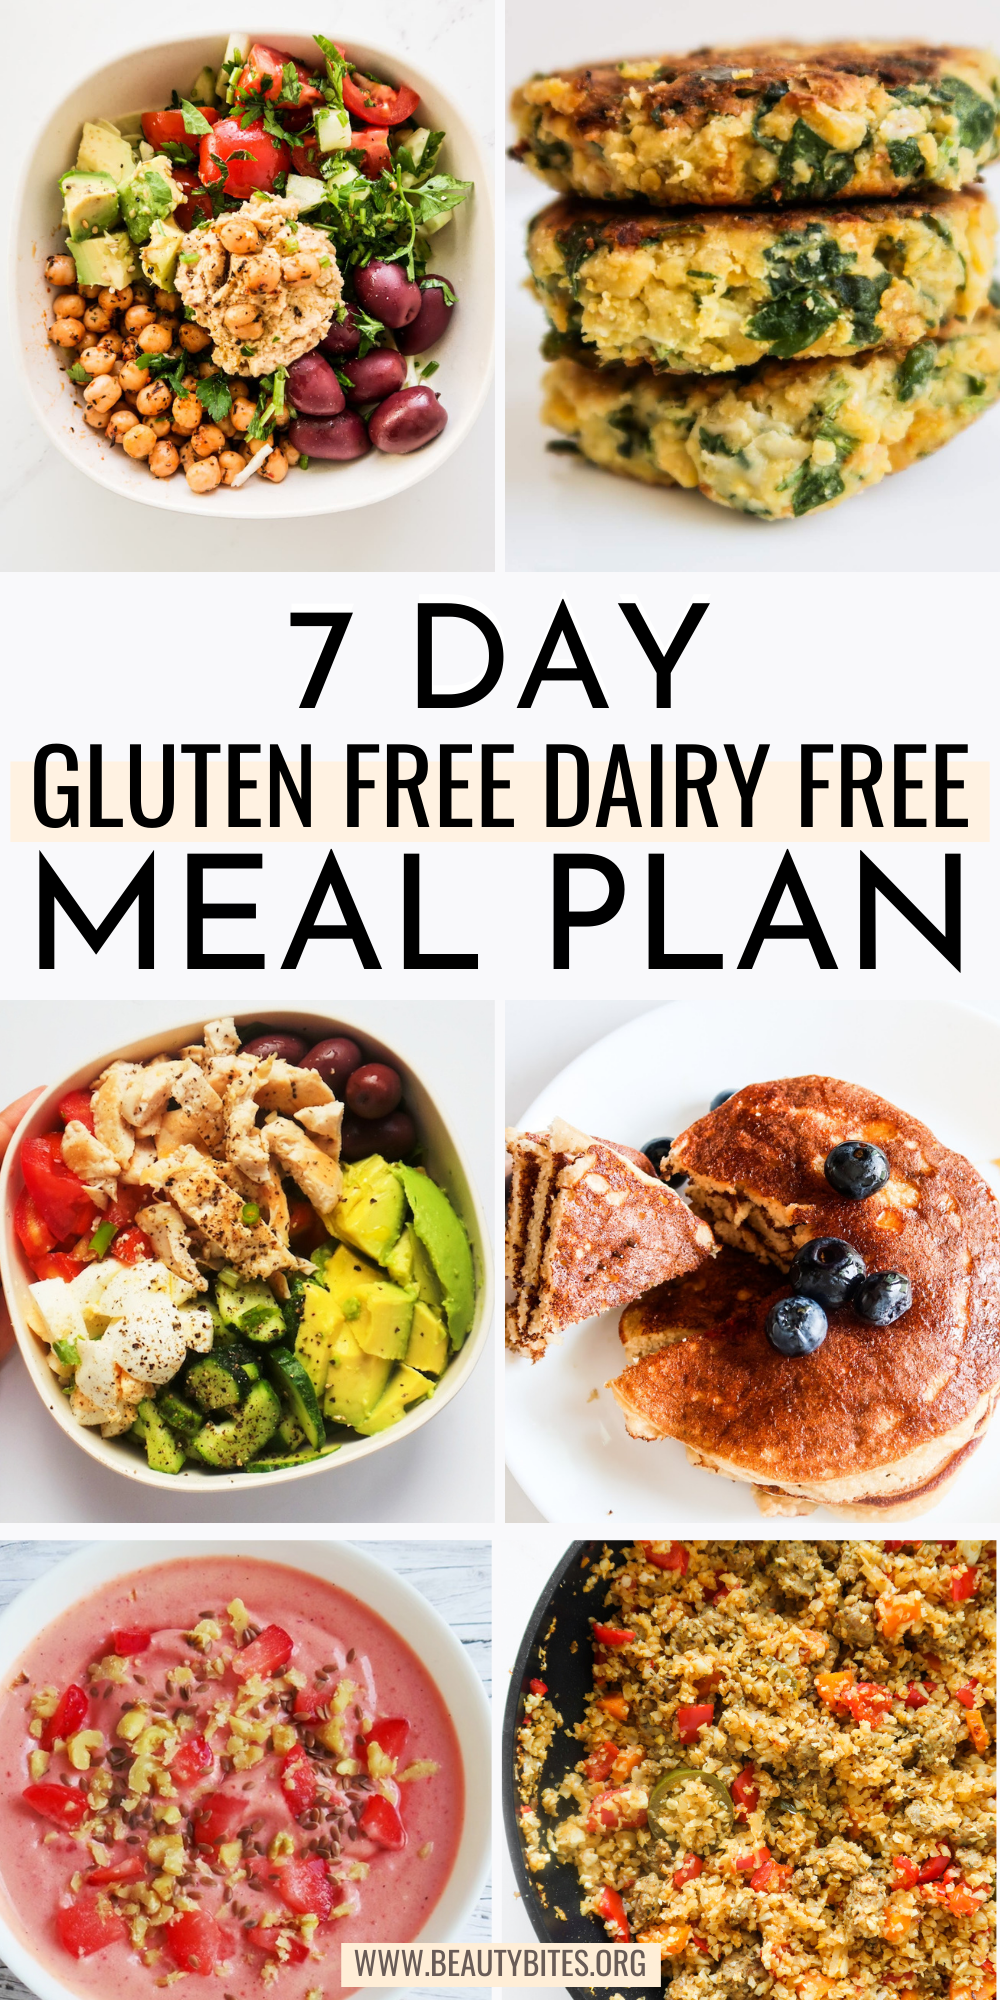 A 7-day dairy free gluten free meal plan with grocery list and clean eating recipes for breakfast, lunch and dinner!